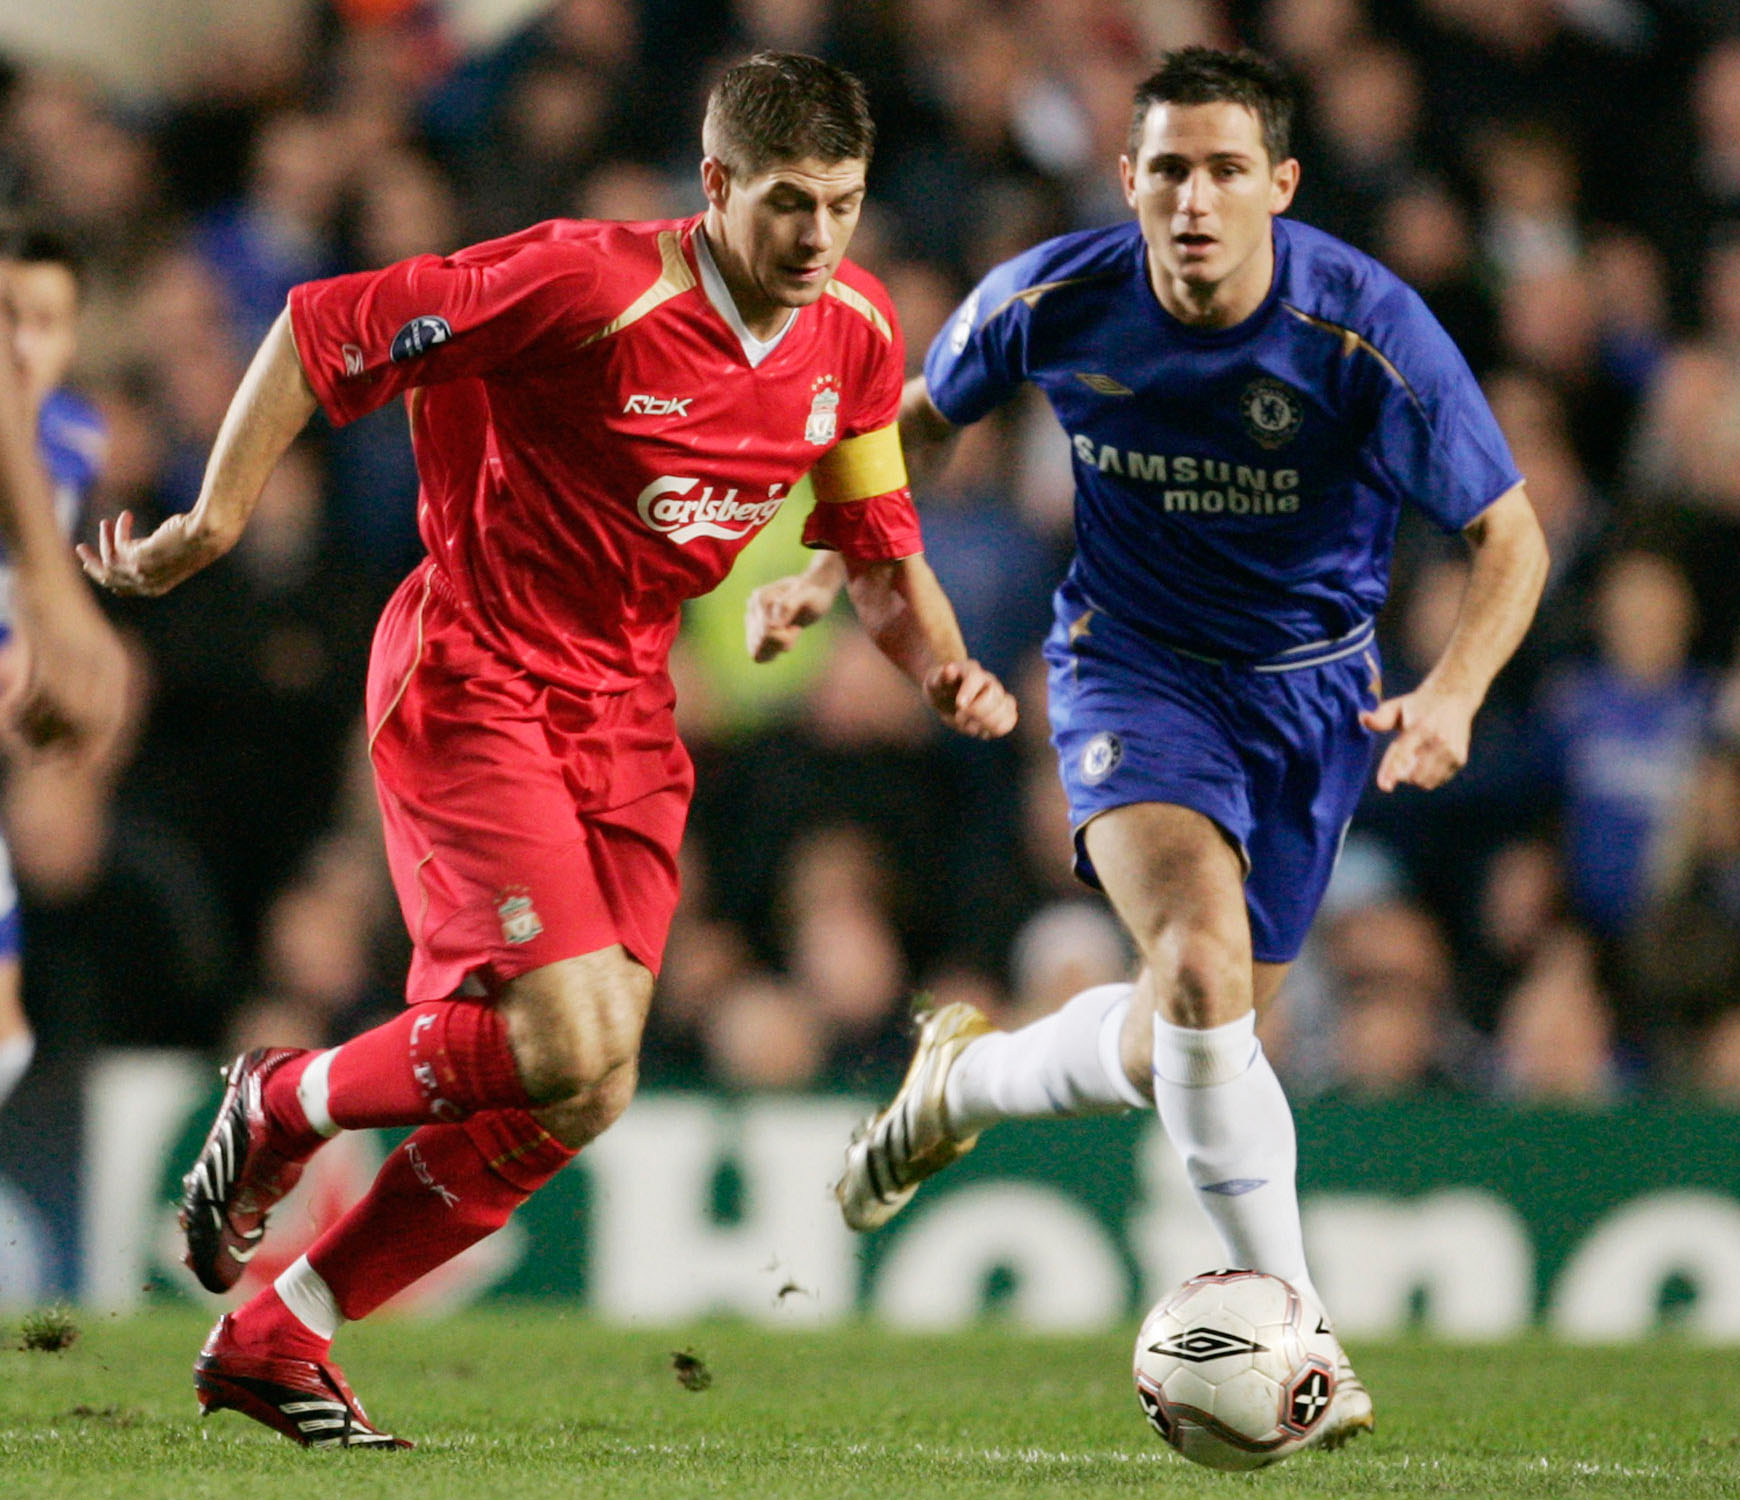 Barcelona Vs Liverpool Who Makes The Combined Xi Ahead Of: Jose Mourinho Picks Steven Gerrard Over Frank Lampard (in